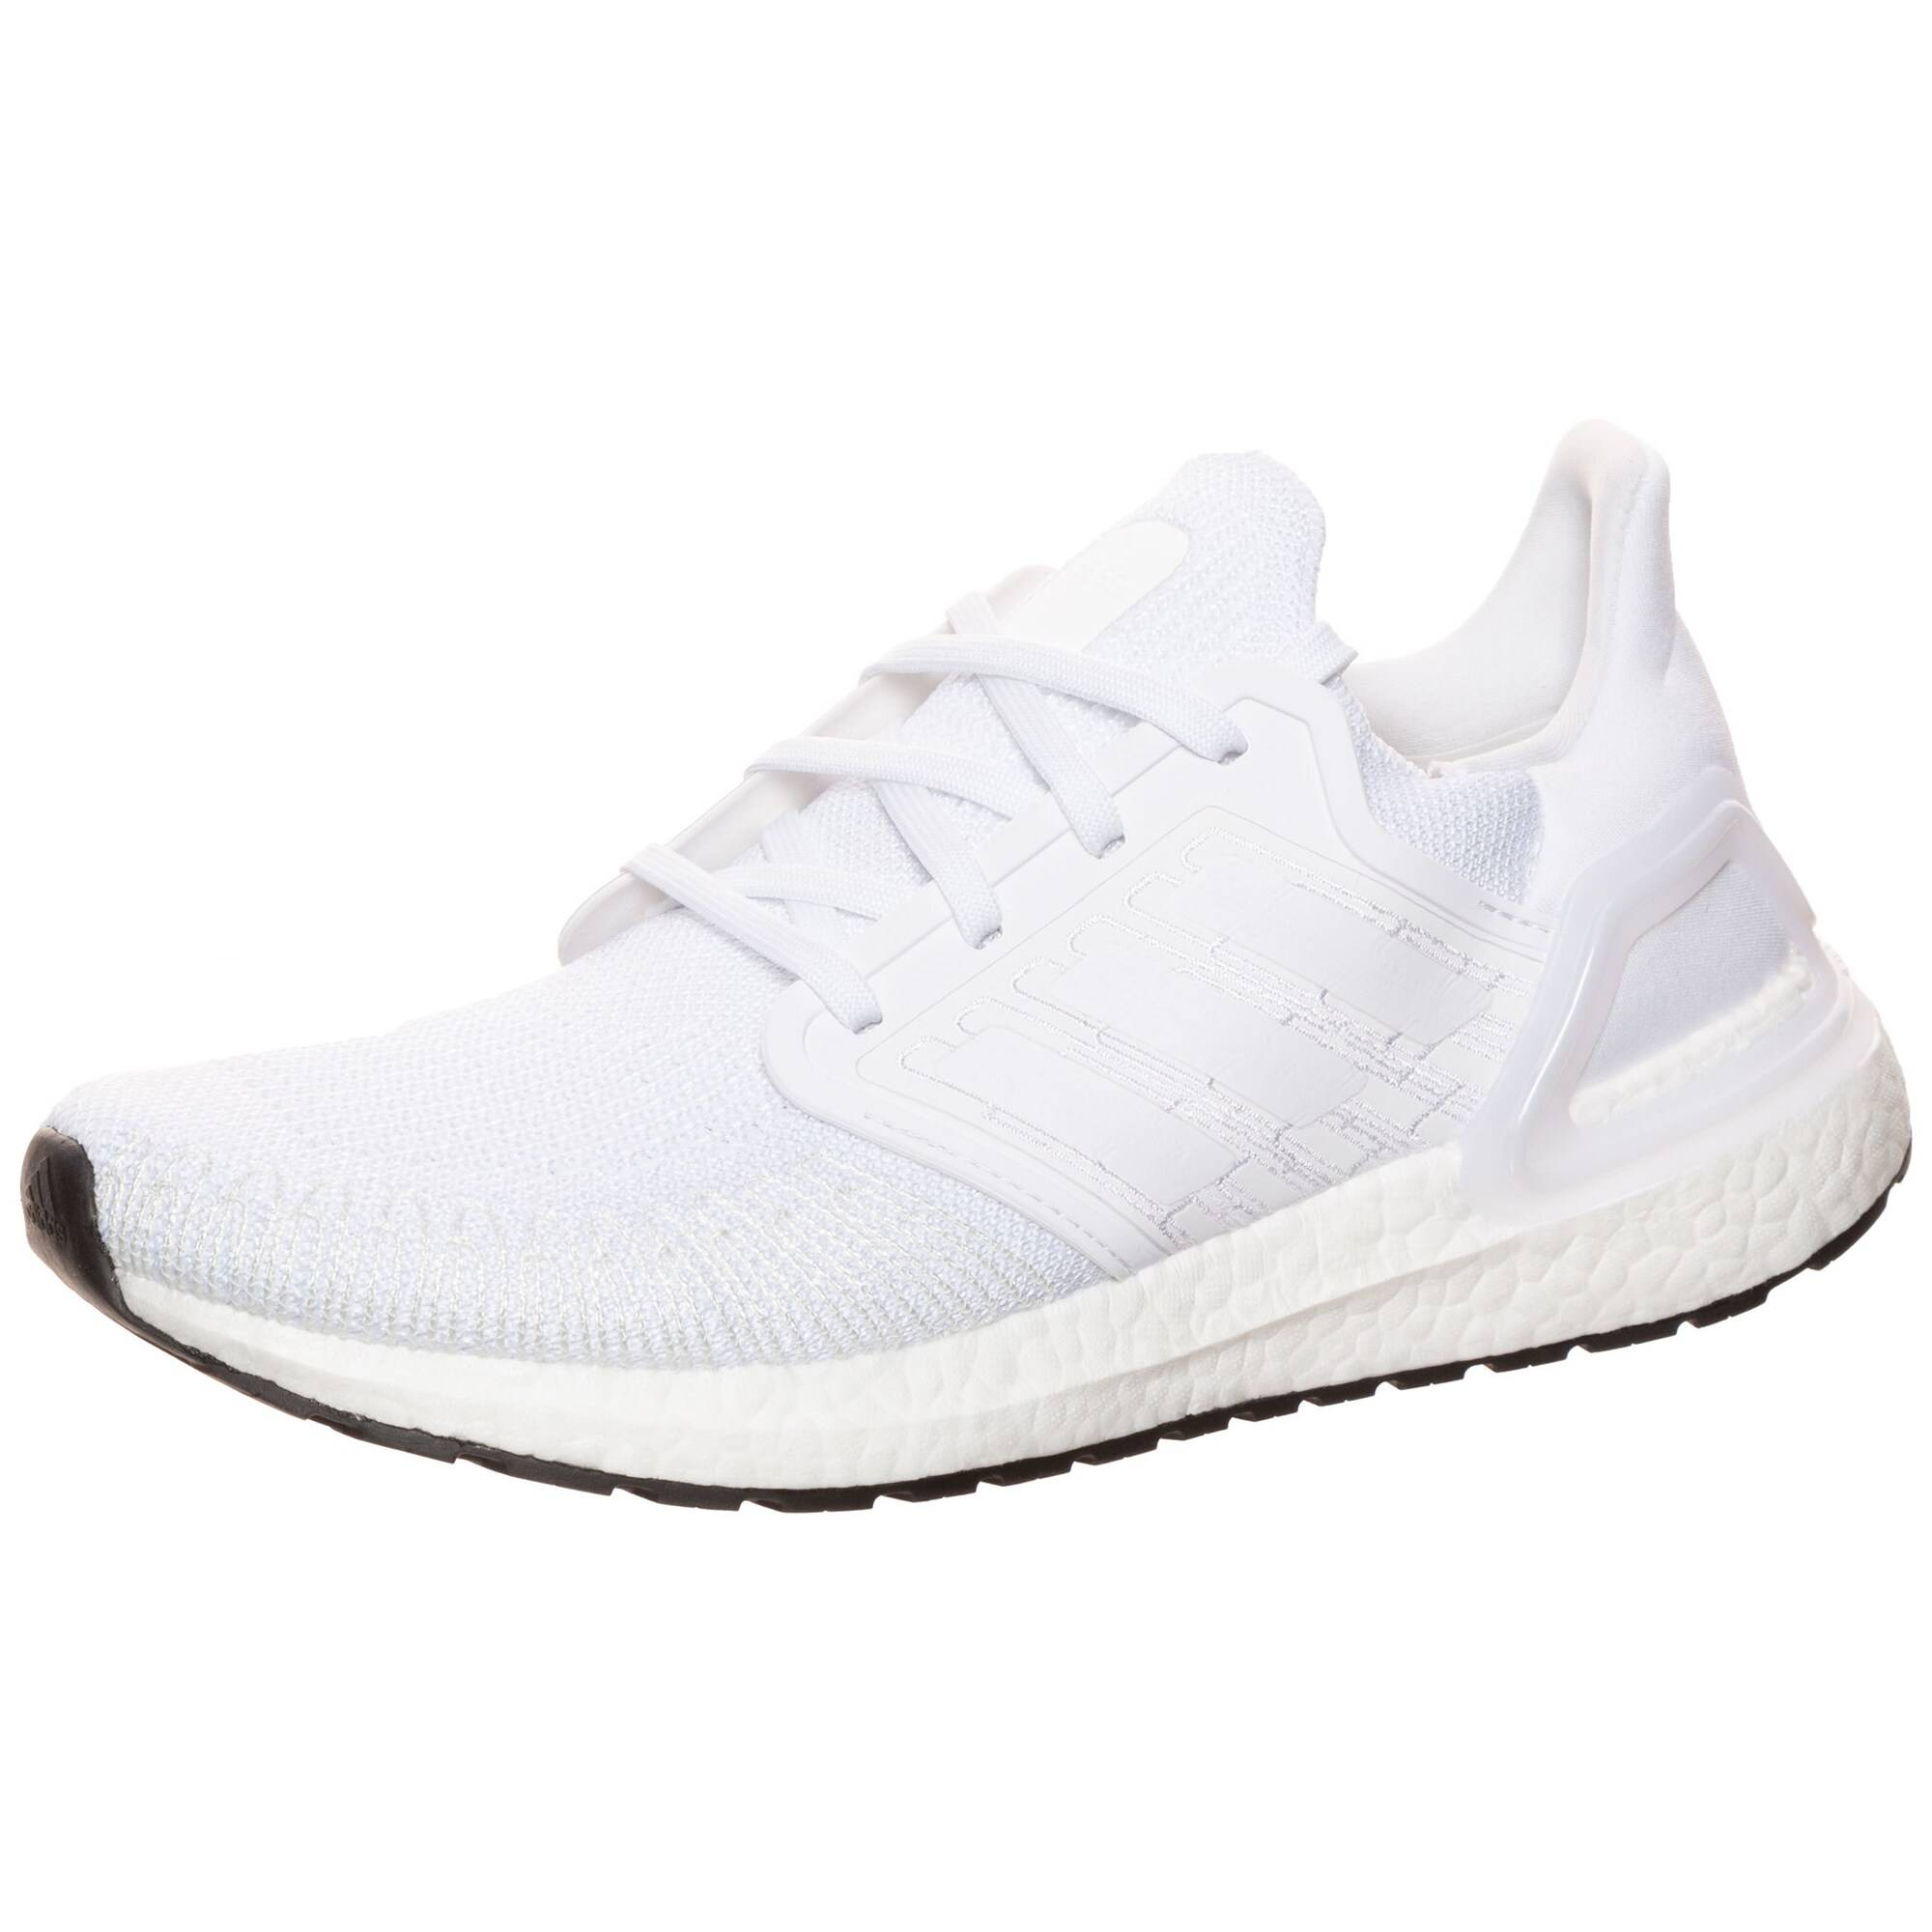 ADIDAS PERFORMANCE Chaussure de course 'ULTRABOOST 20 W'  - Blanc - Taille: 5.5 - female